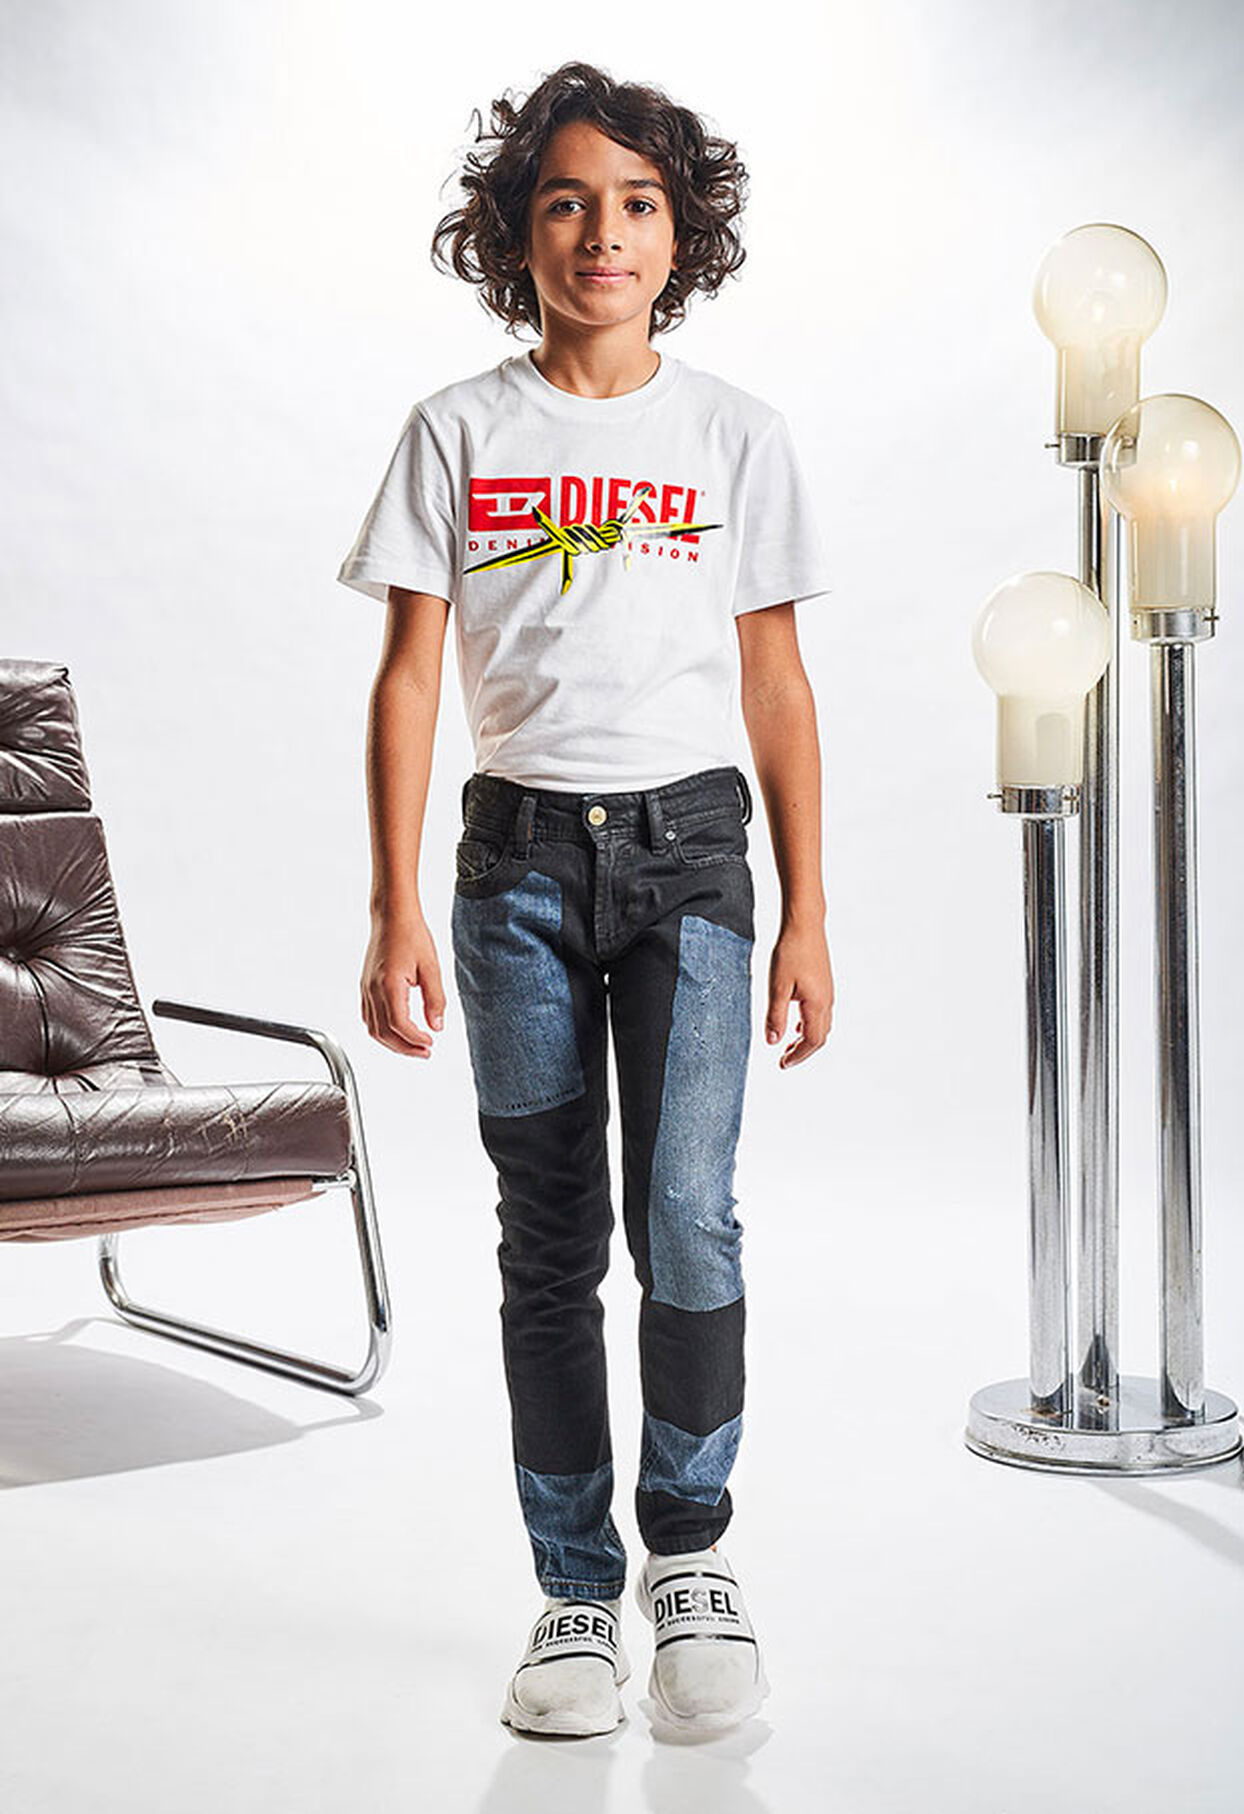 https://hu.diesel.com/dw/image/v2/BBLG_PRD/on/demandware.static/-/Library-Sites-DieselMFSharedLibrary/default/dw333e1848/CATEGORYOV/2x2_denim-junior_5.jpg?sw=1244&sh=1814